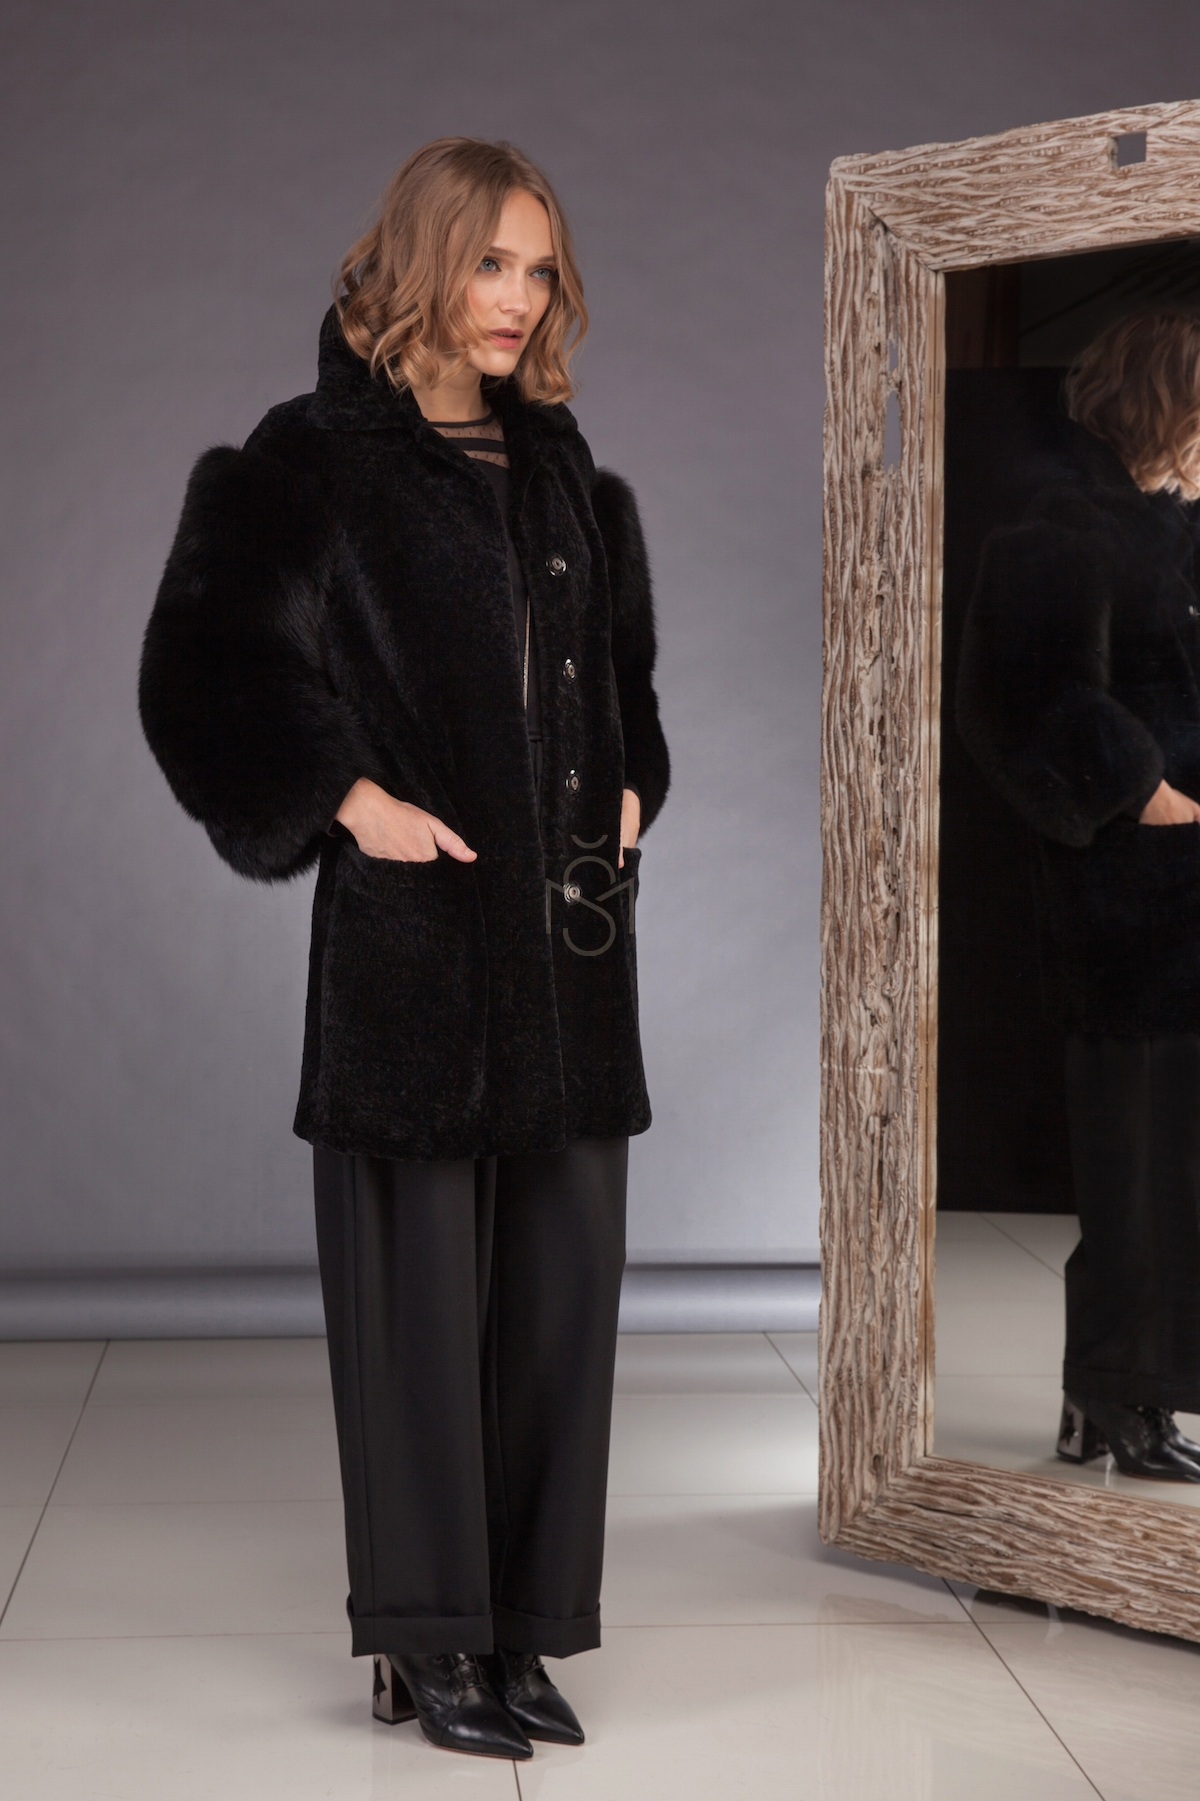 Sheepskin coat with fox fur sleeves_black_made by SILTA MADA fur studio in Vilnius